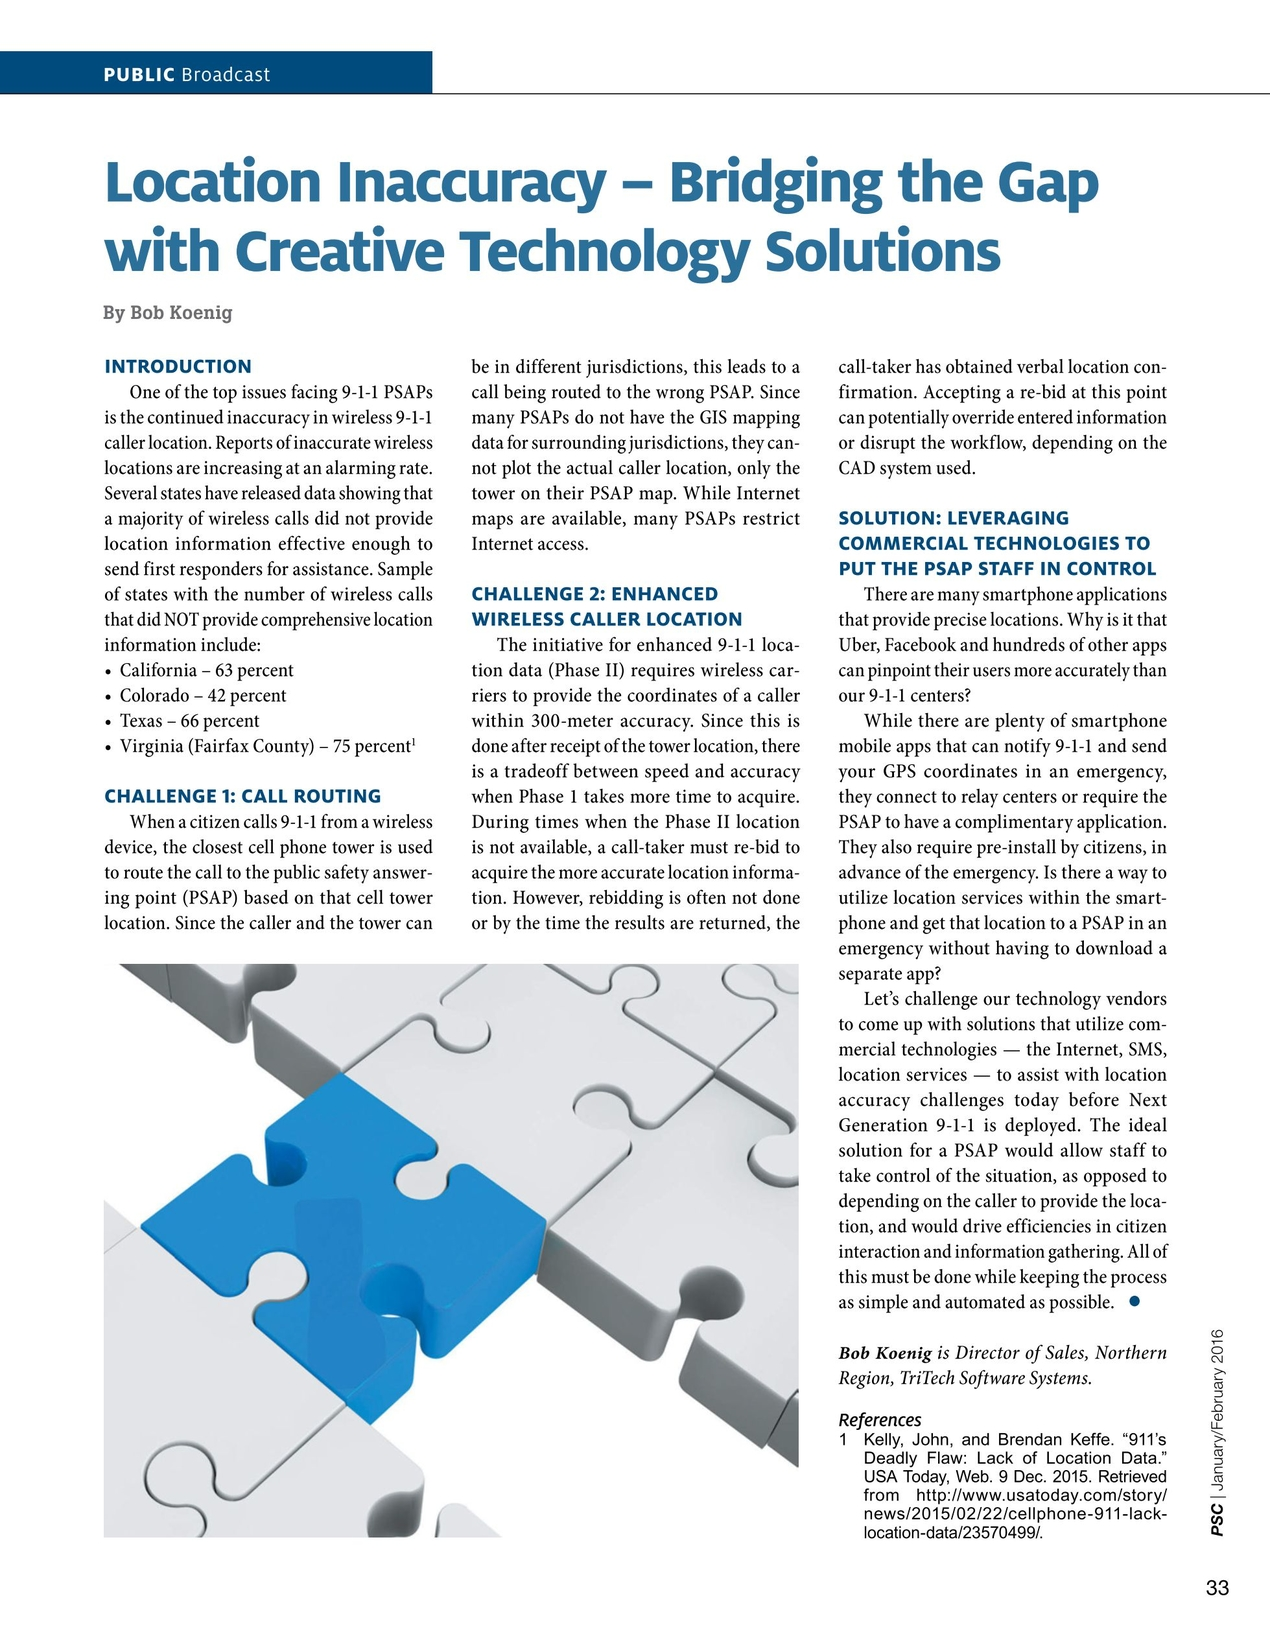 Psc januaryfebruary 2016 issue 32 33 psc januaryfebruary 2016 issue page 32 cde exam 41527 1 which of the following best describes where the risk of liability is found a xflitez Images